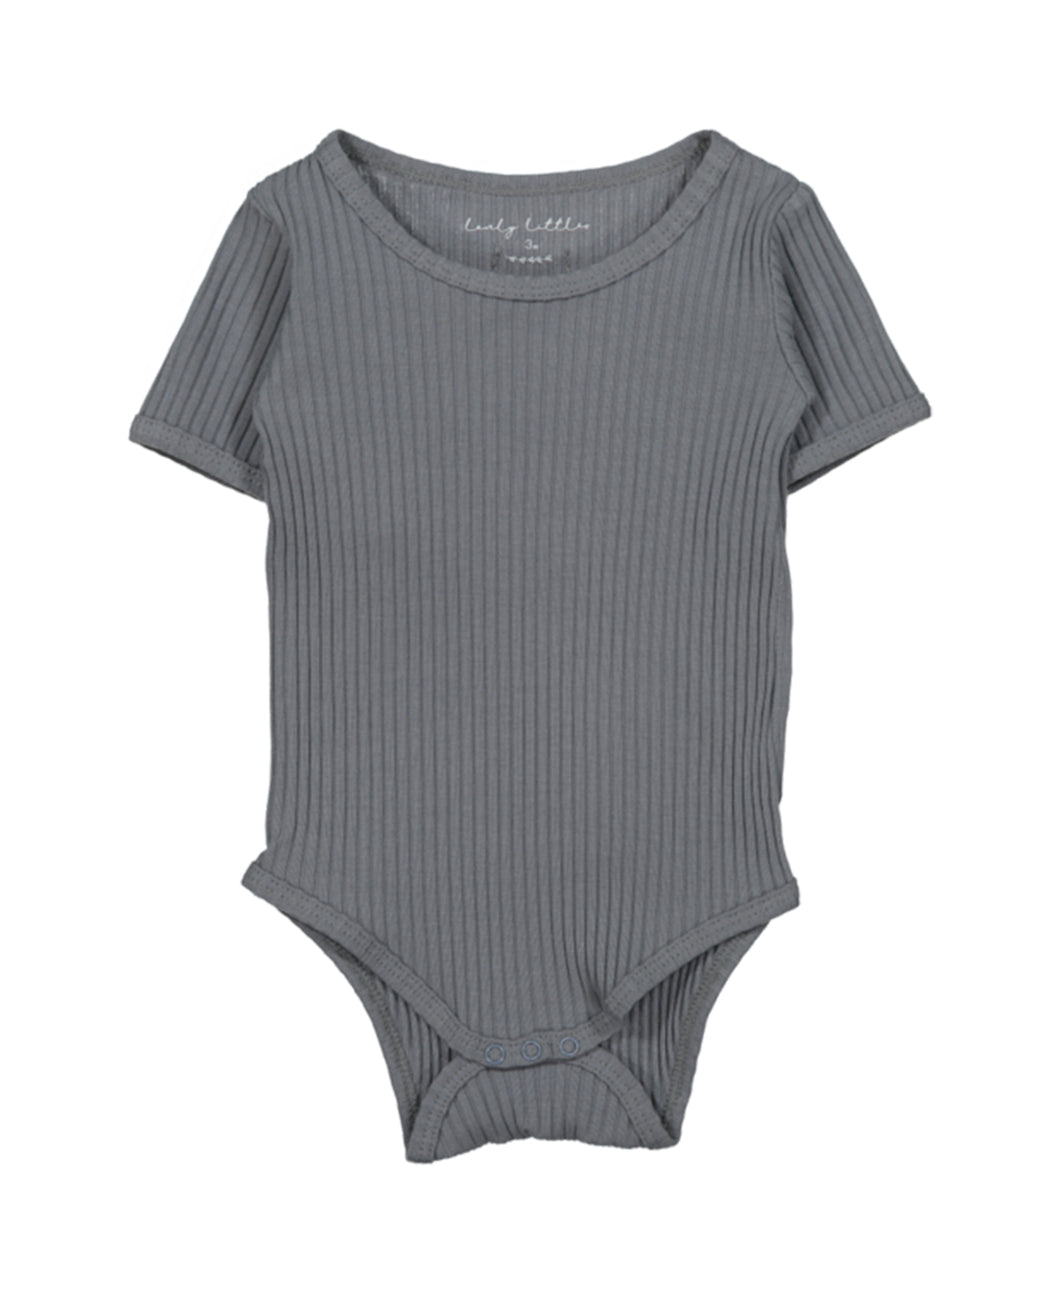 Ribbed Short Sleeve Onesie – Slate